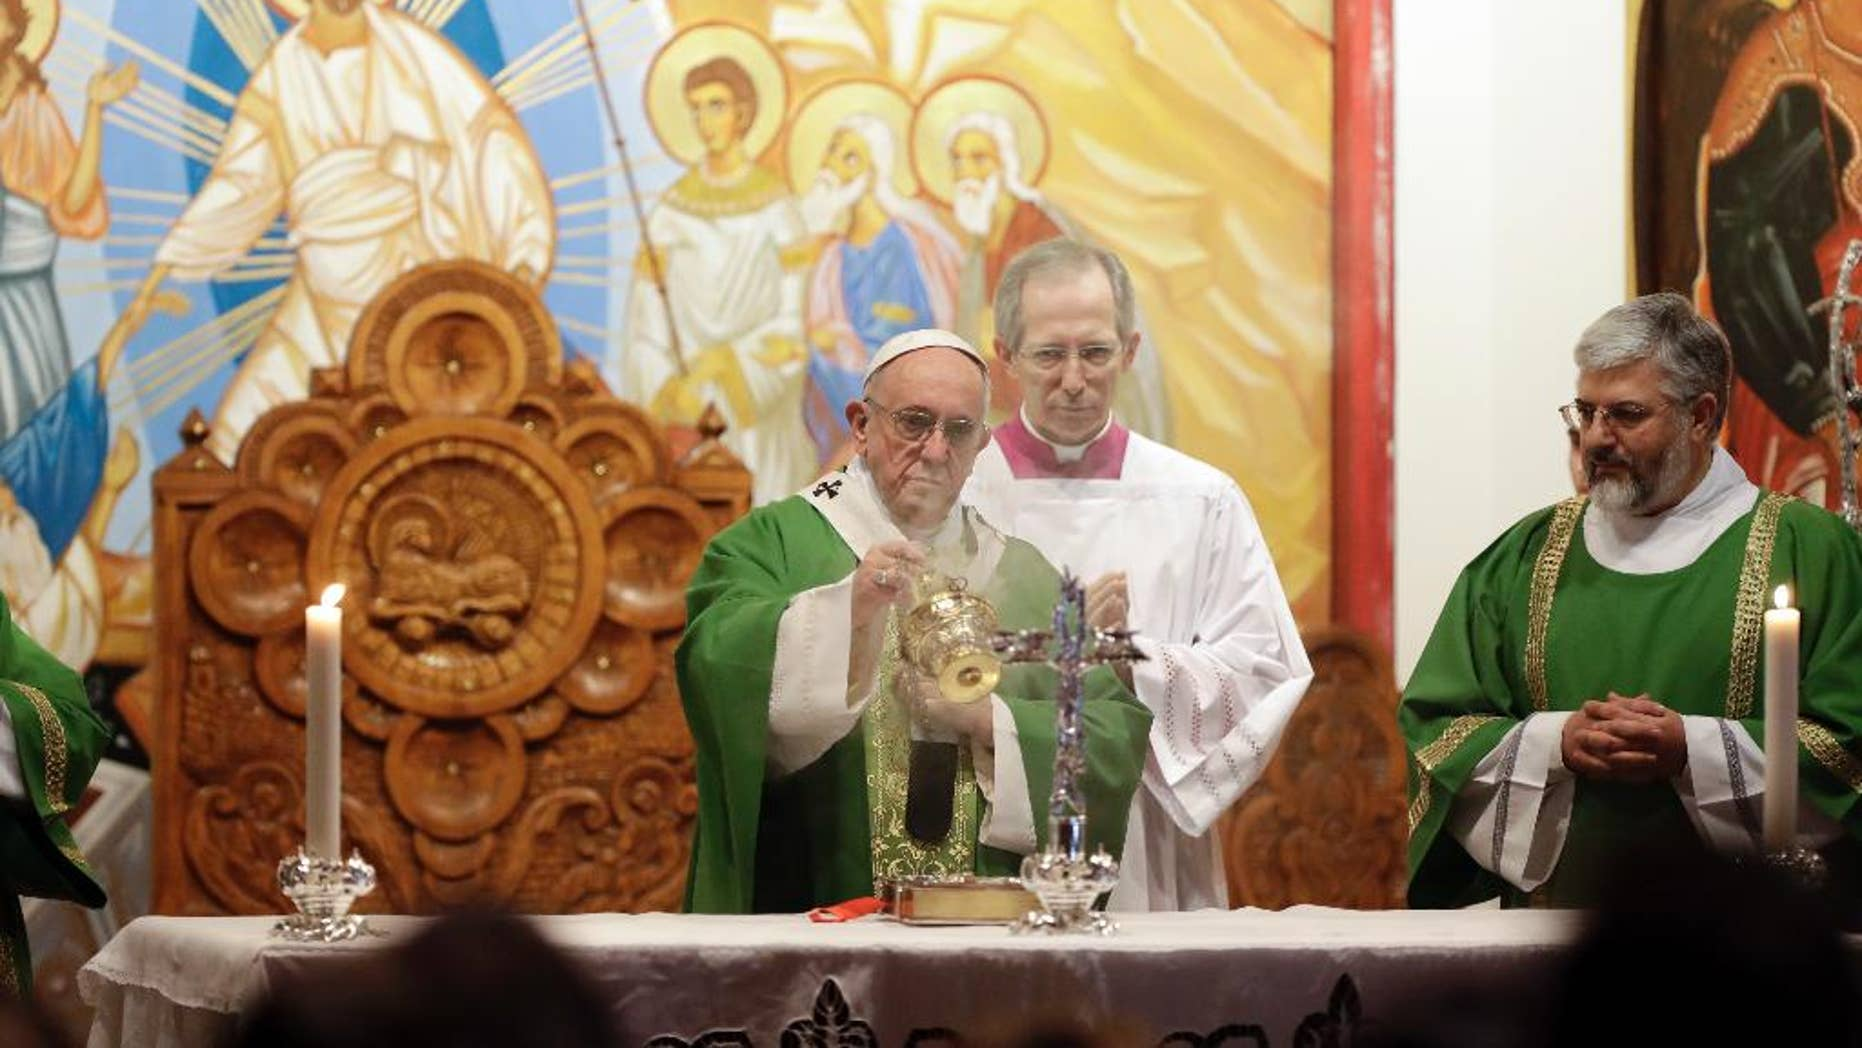 Pope Francis incenses the altar as he celebrates Mass at the St. Mary of Setteville di Guidonia parish church, in the outskirts of Rome, Sunday, Jan. 15, 2017. (AP Photo/Andrew Medichini)